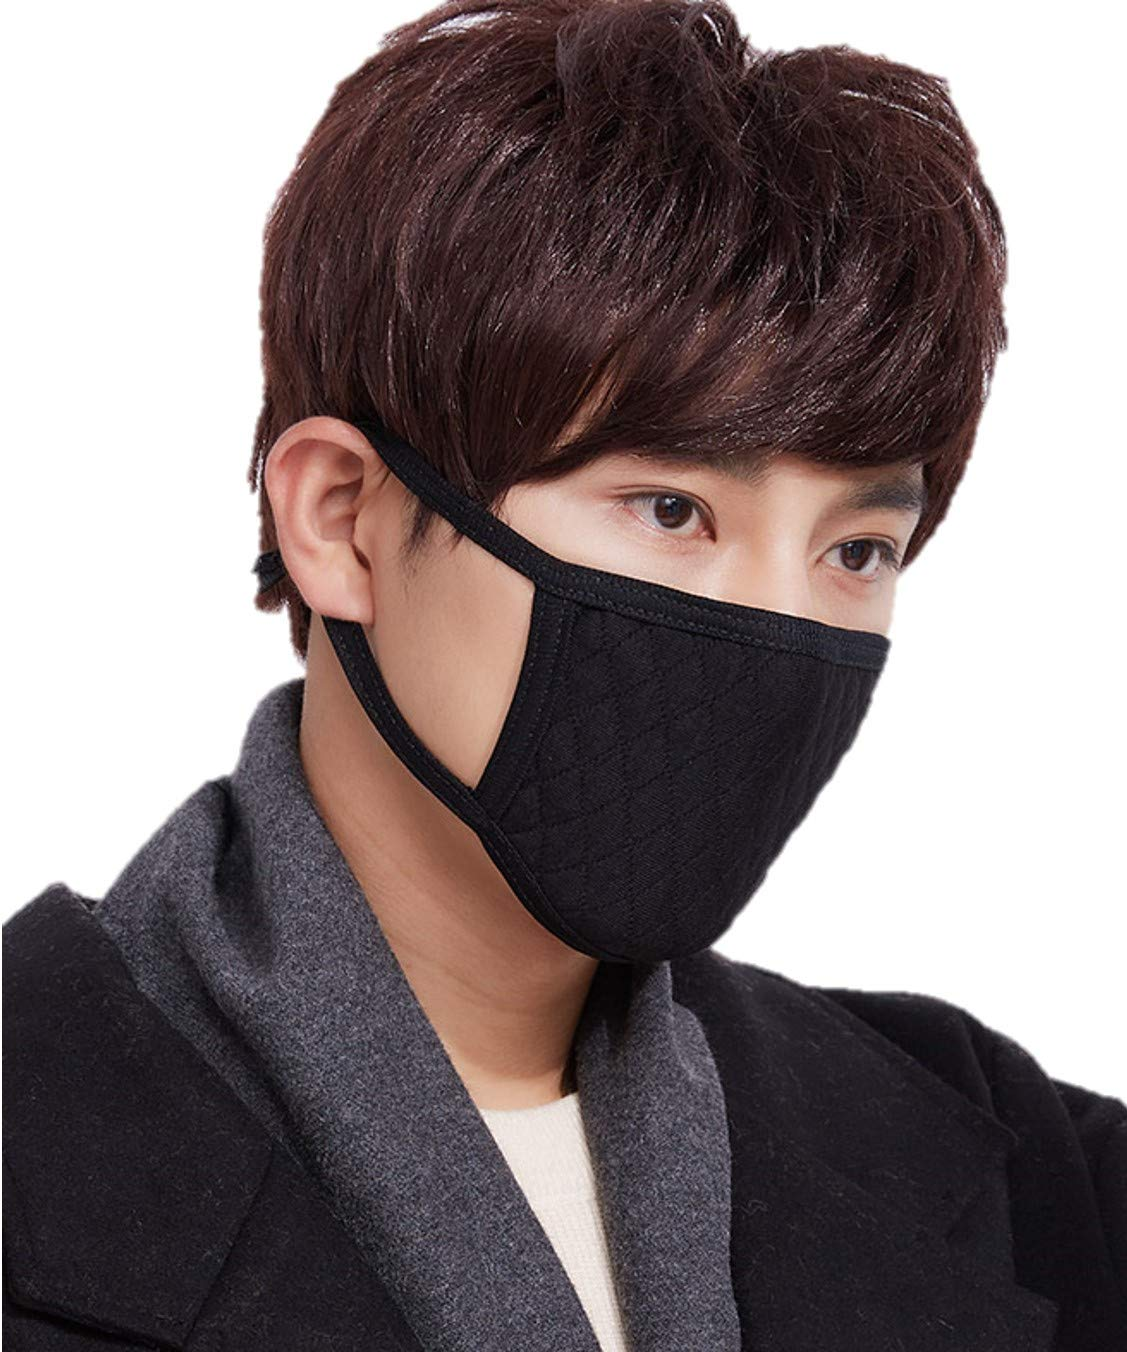 iHomey 3-Pack PM 2.5 Cotton Face Mouth Mask with Filter Dustproof Anti-flu (3Pcs Thicken Black-A)